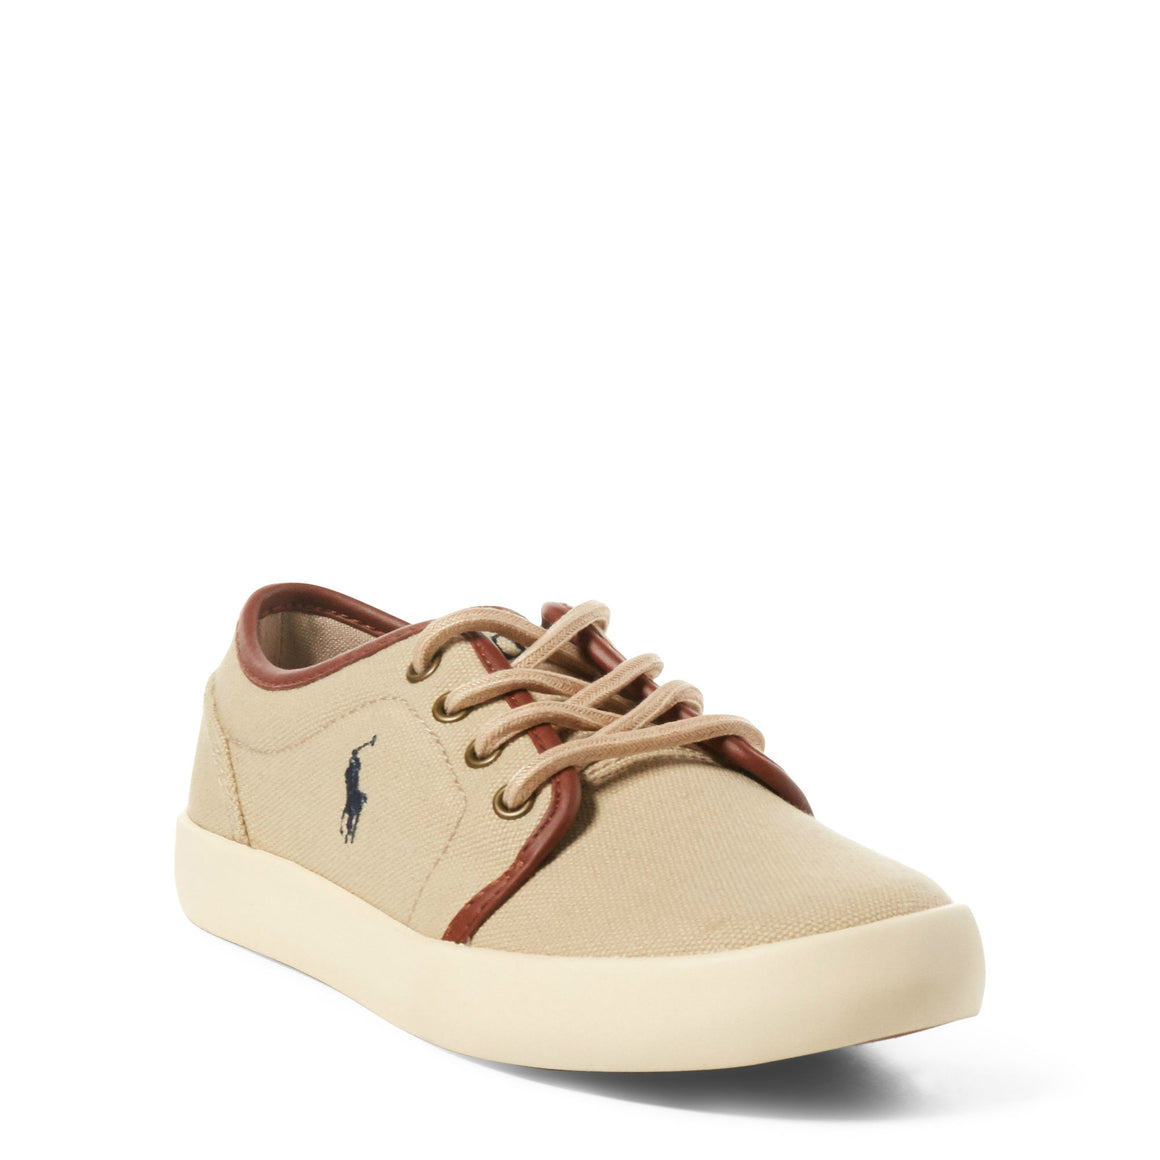 Polo Boy's Ethan Low Canvas Sneaker - Khaki 990547C